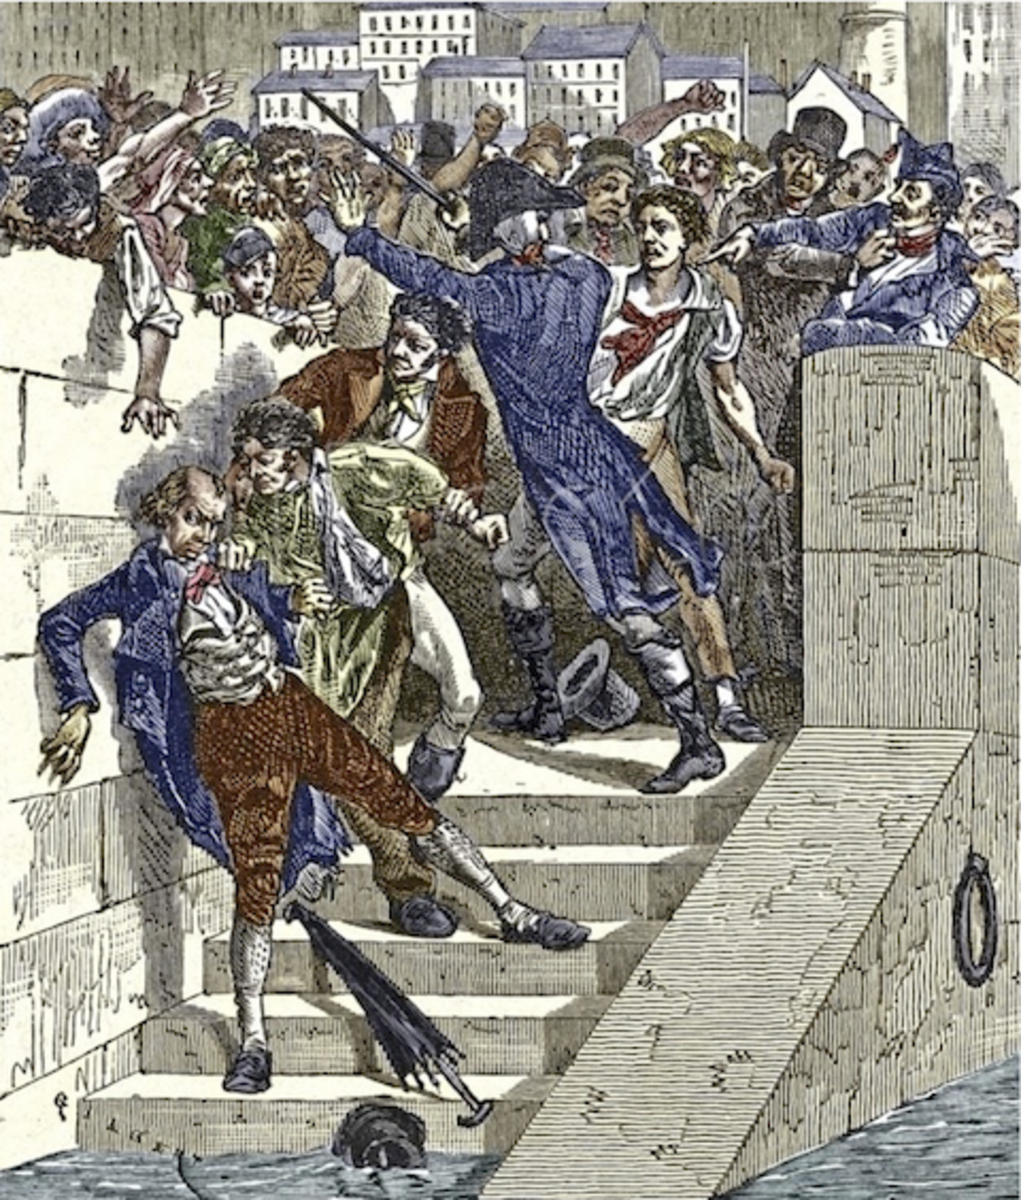 Mob Attacking Jacquard in Lyon, France. Artwork from Les Martyrs de la Science  (G. Tissandier, 1882)